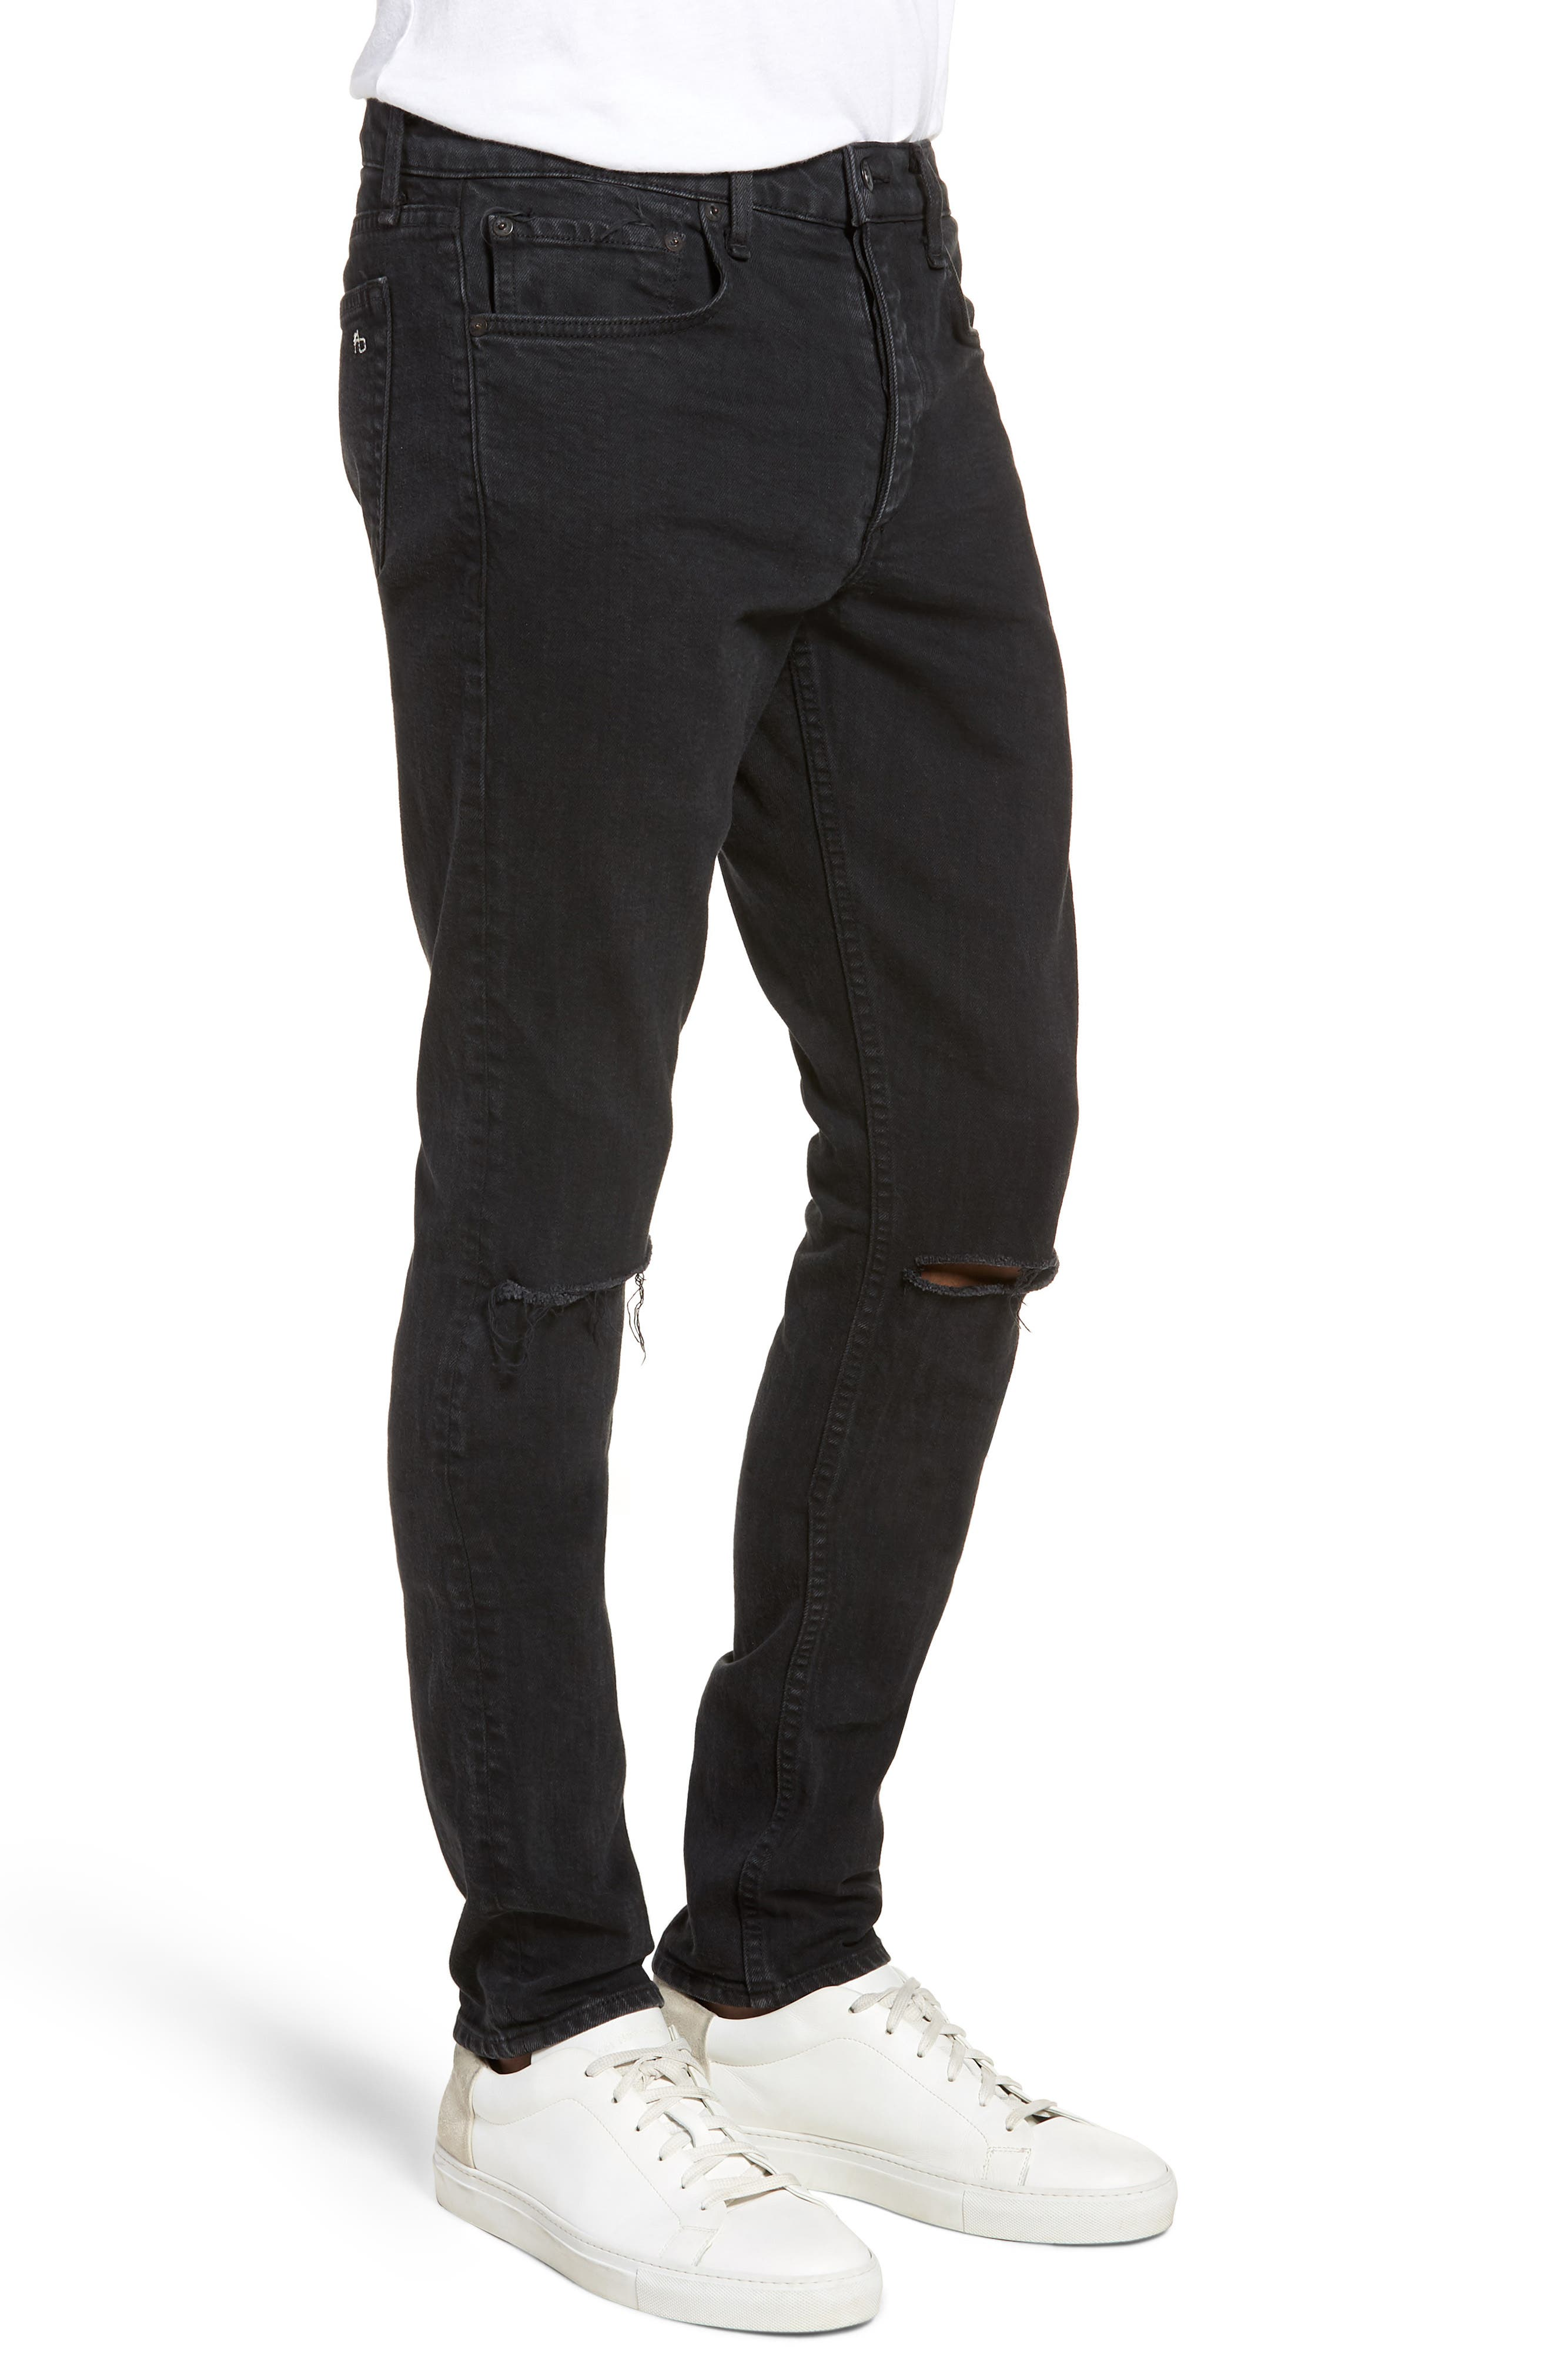 Fit 1 Skinny Fit Jeans,                             Alternate thumbnail 3, color,                             Shelter W/ Holes